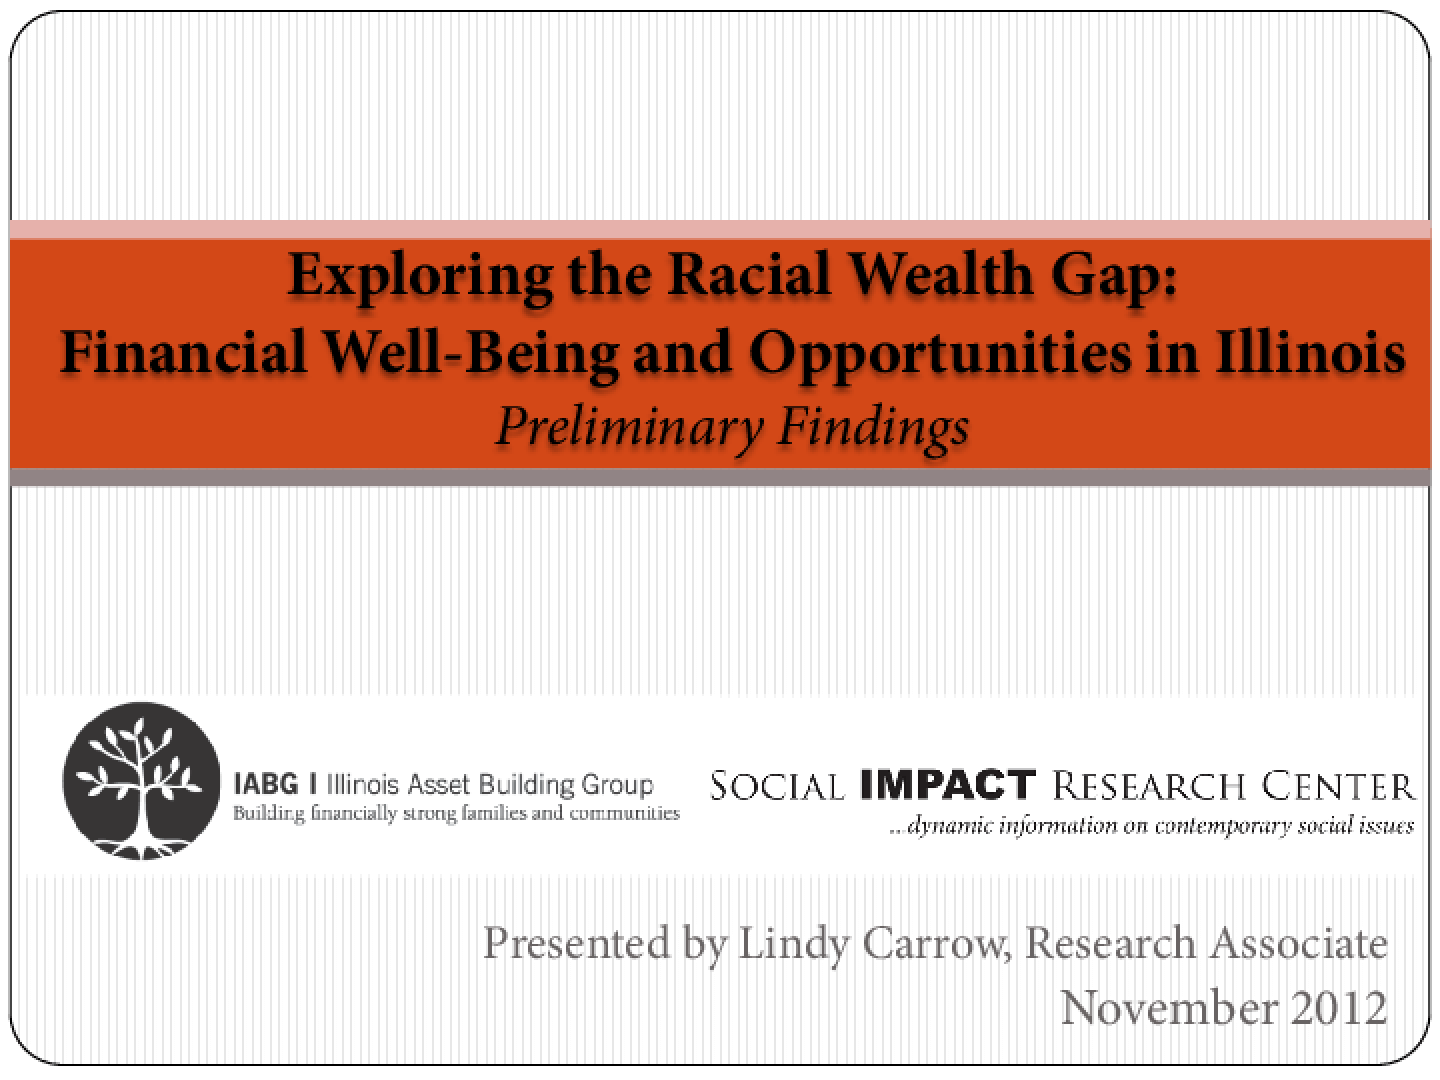 Exploring the Racial Wealth Gap: Financial Well-Being and Opportunities in Illinois - Preliminary Findings